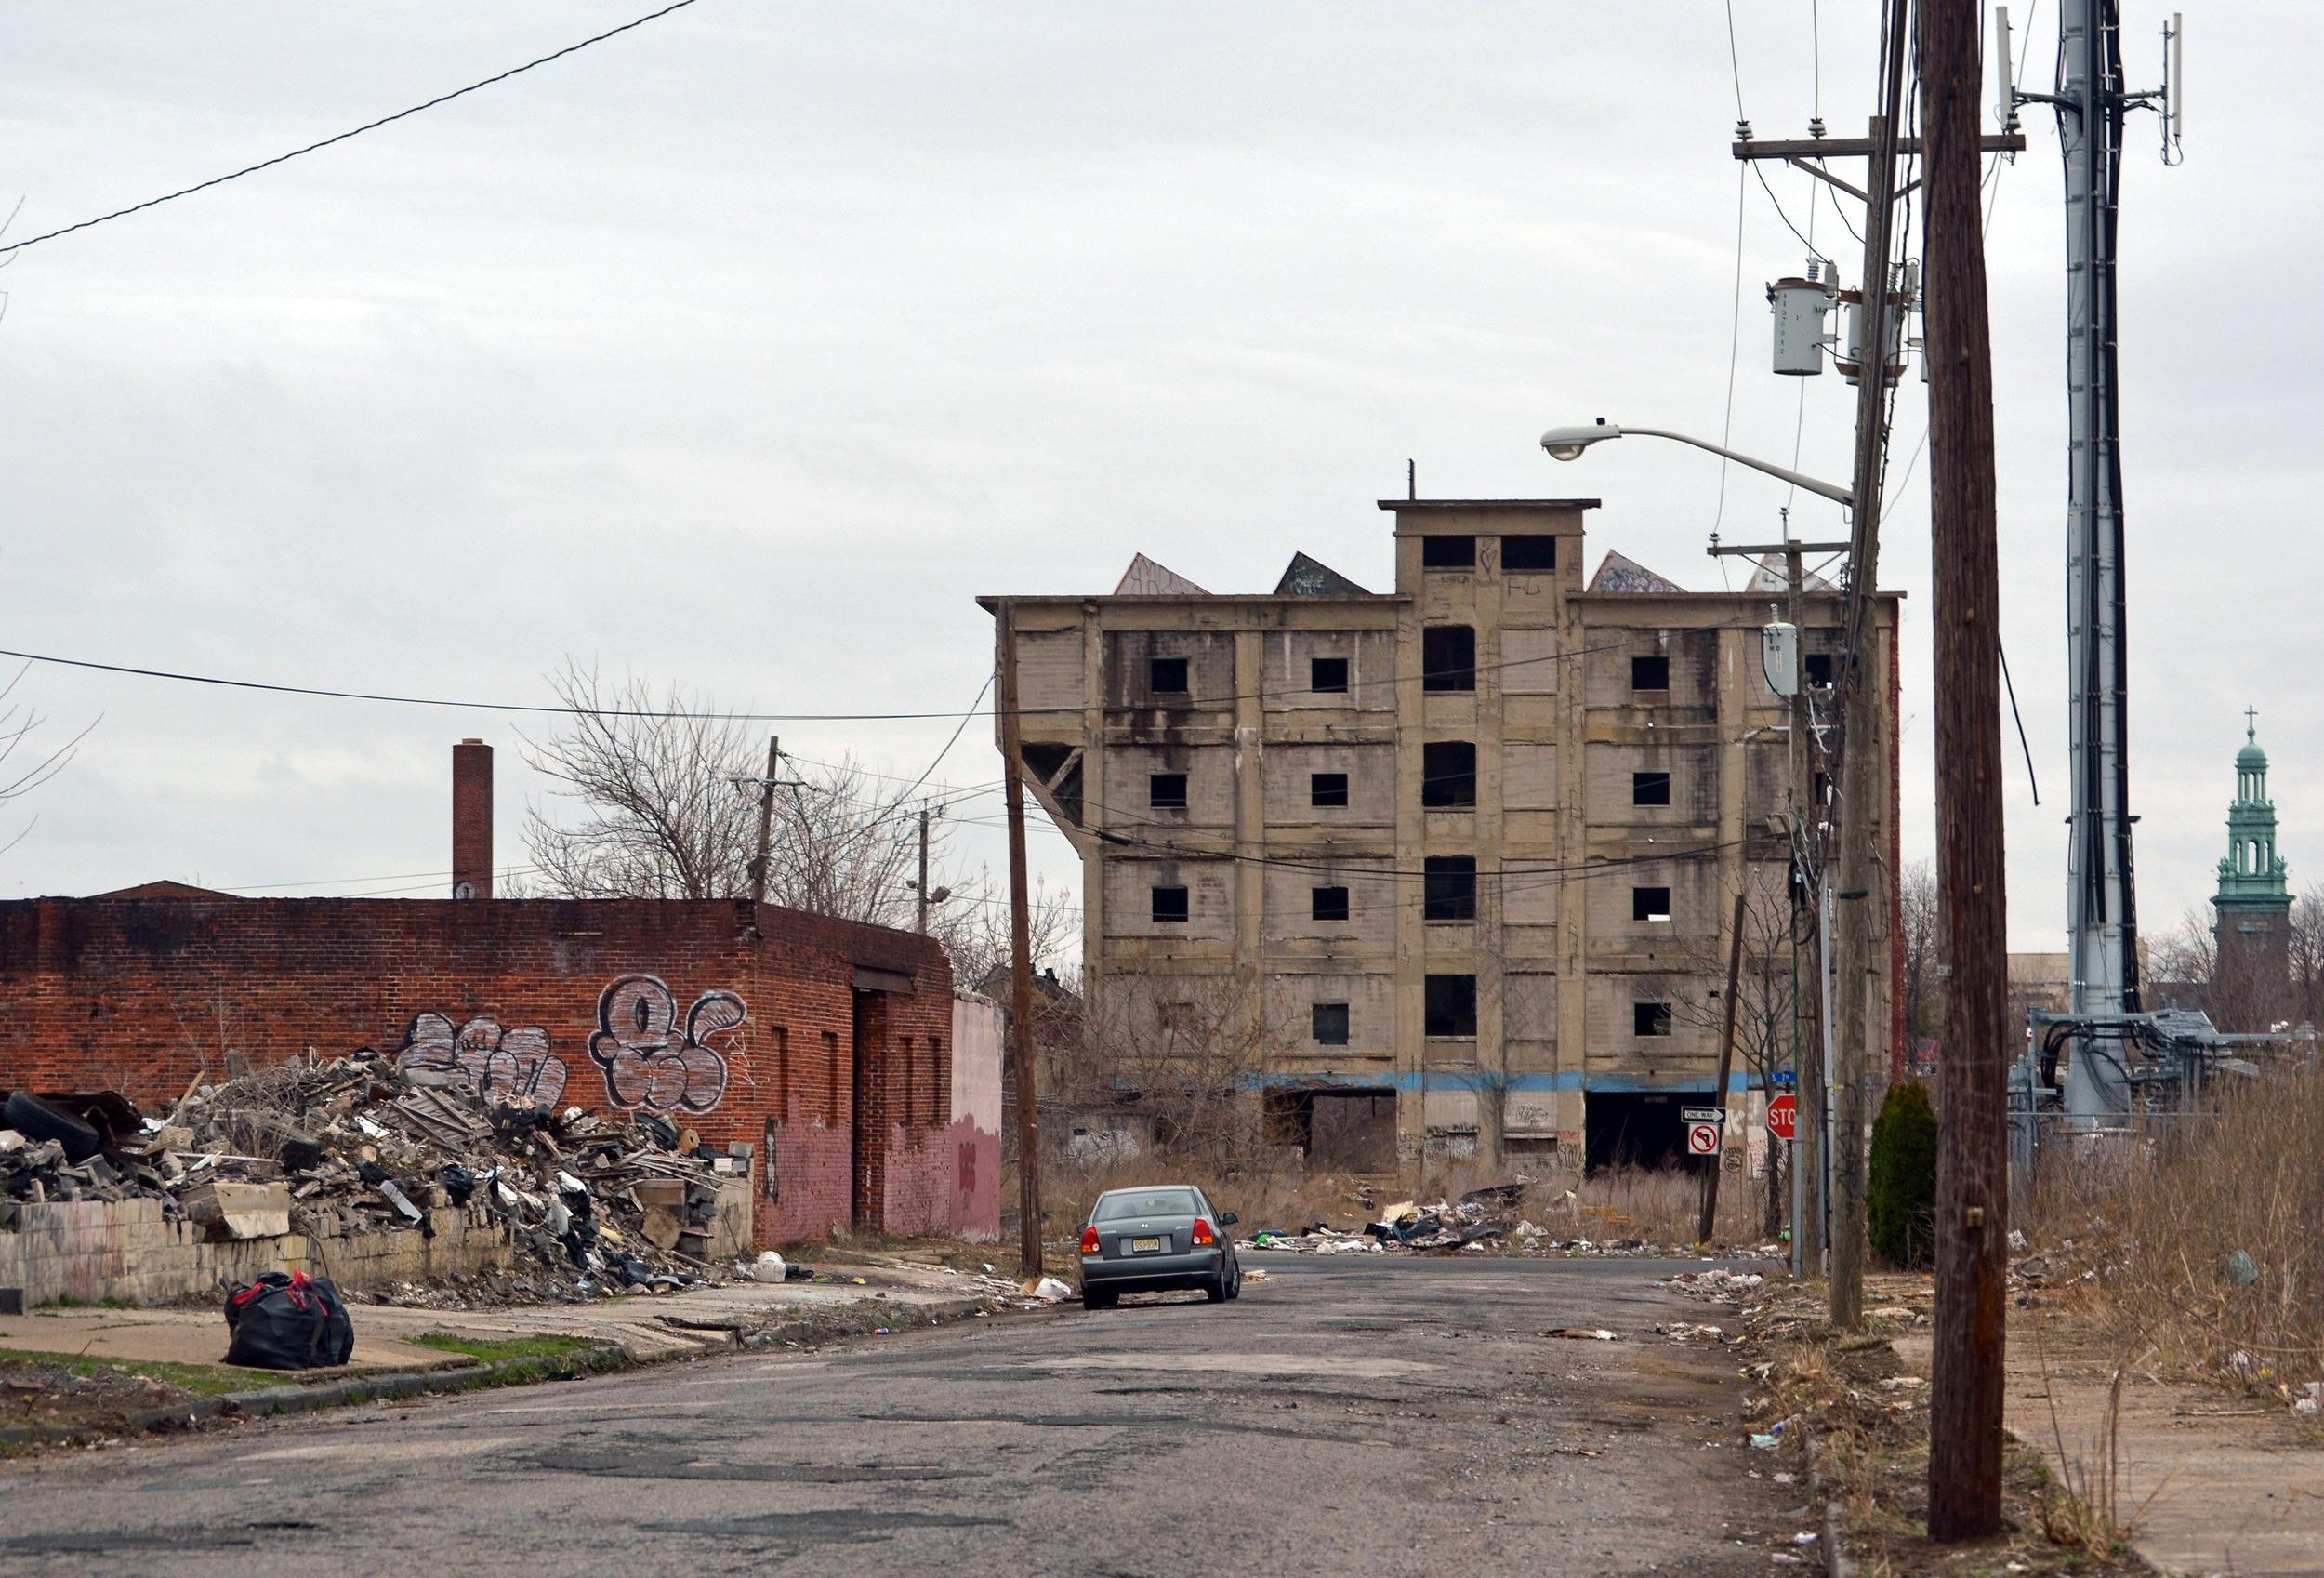 America's poor, like many living in Camden, NJ. are falling further behind the rest of the national a study says.